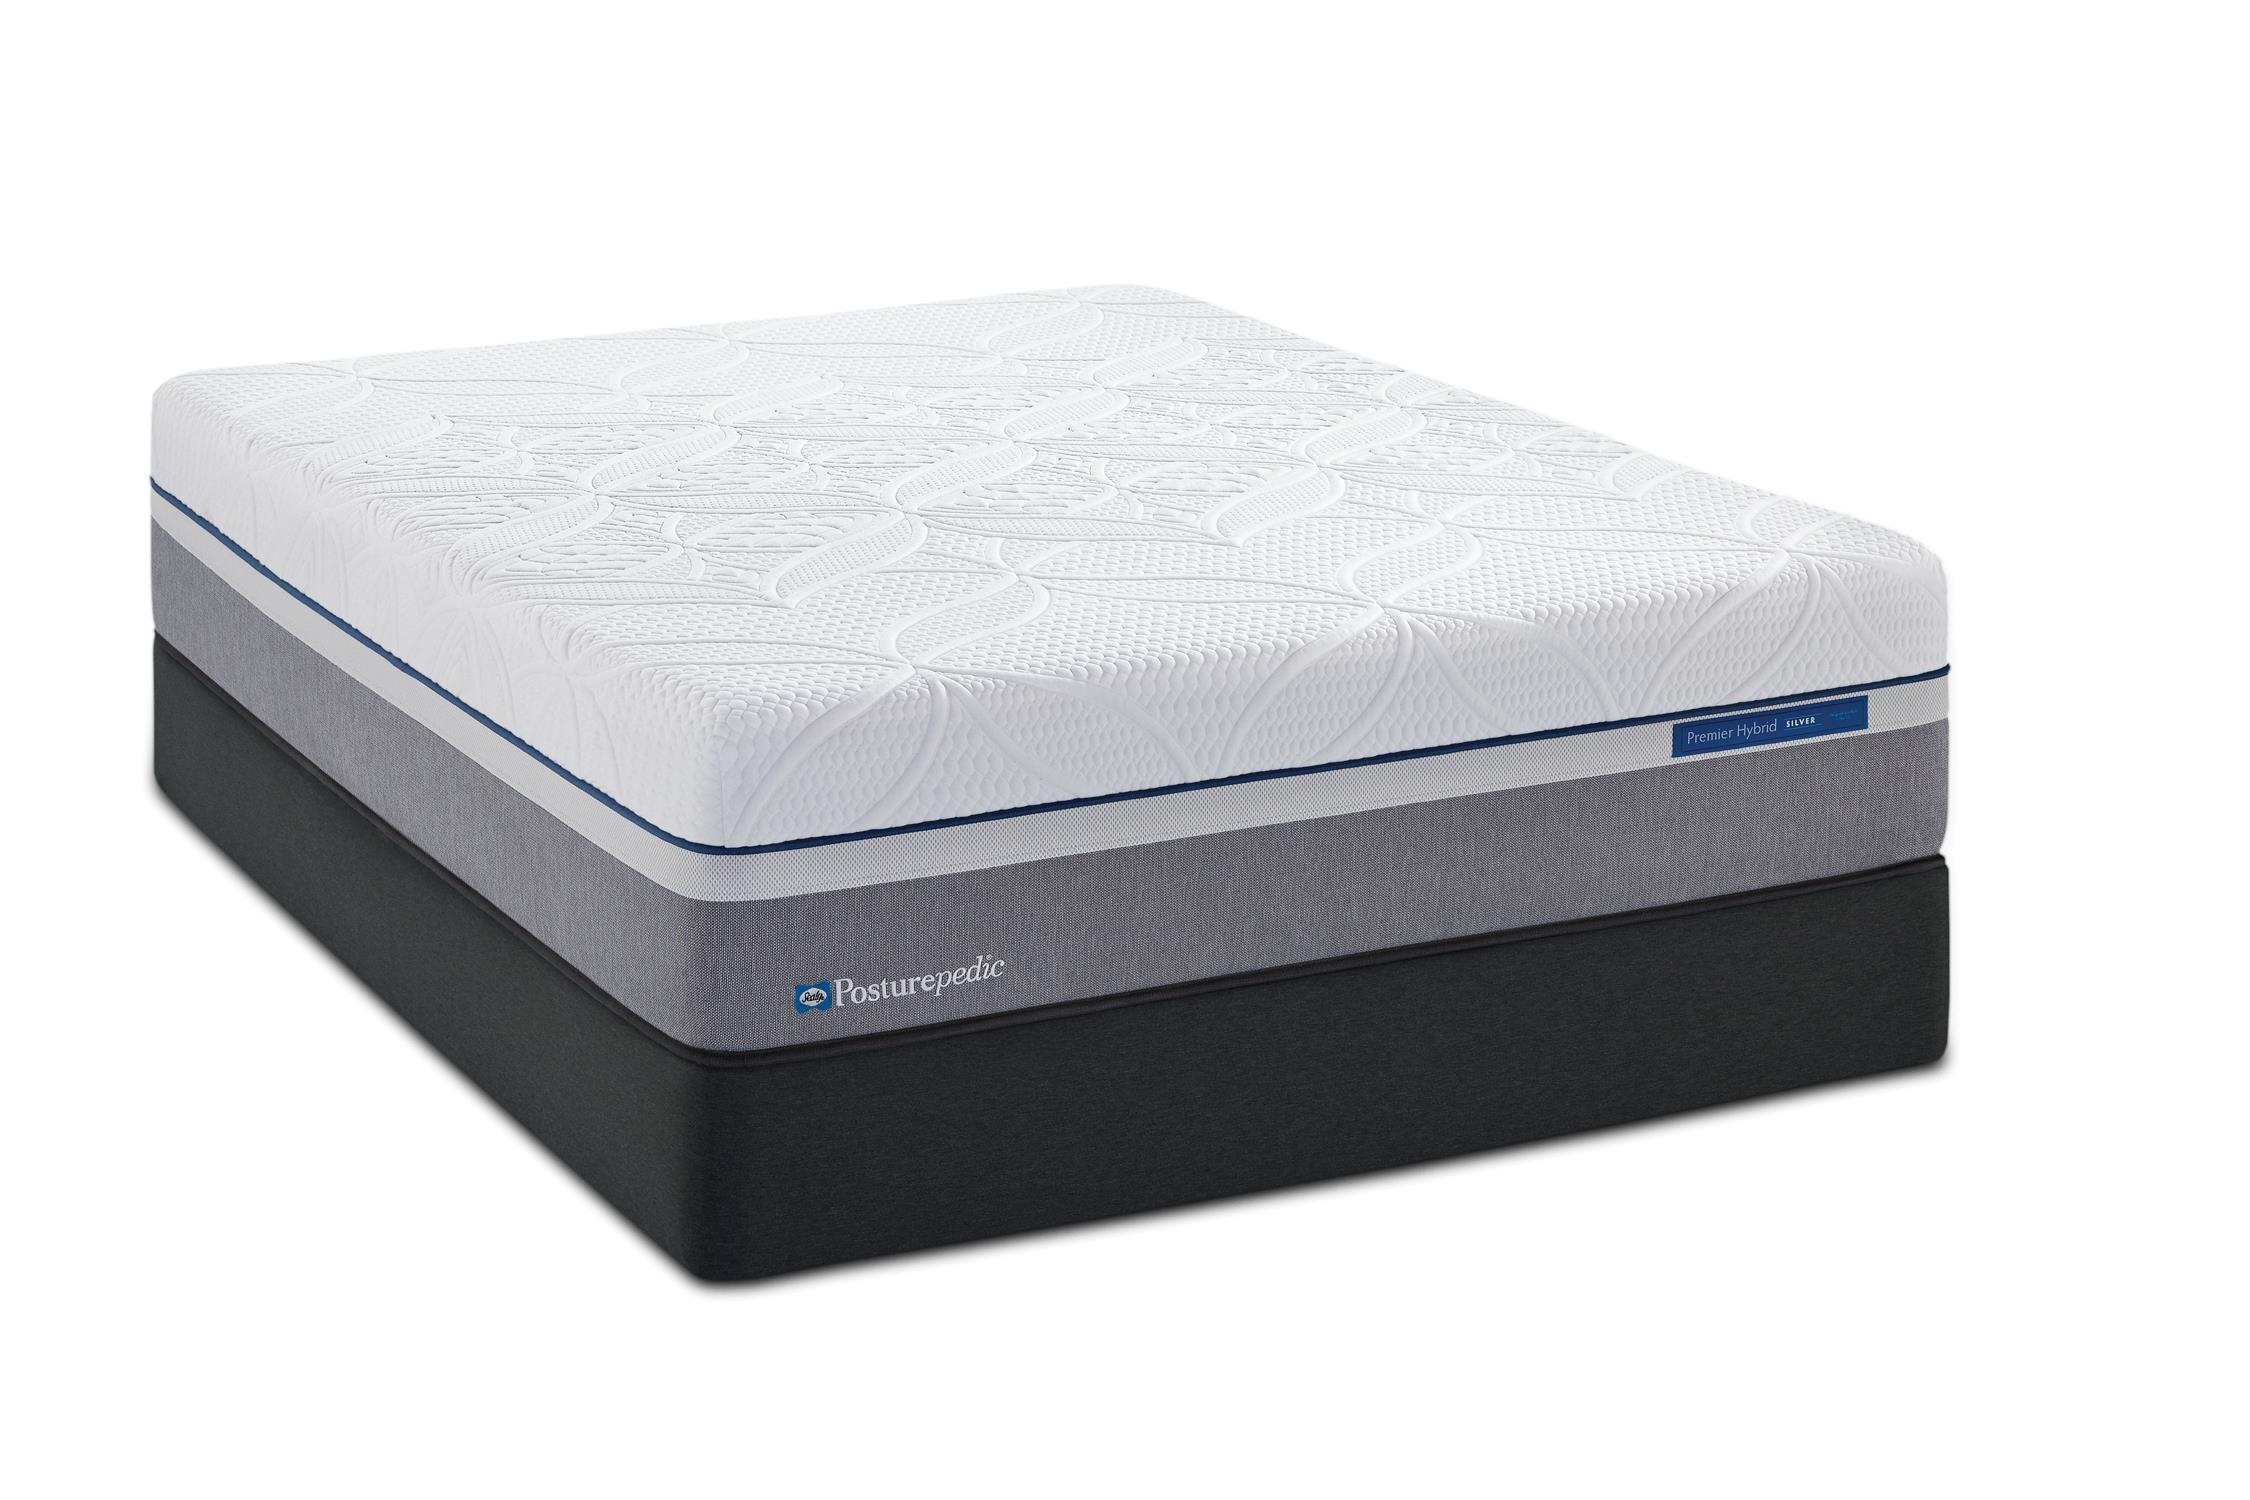 Sealy Posturepedic Hybrid Silver Twin XL Plush Hybrid Mattress Set, Adj - Item Number: PlushHybrid-TXL+Reflexion7-TXL